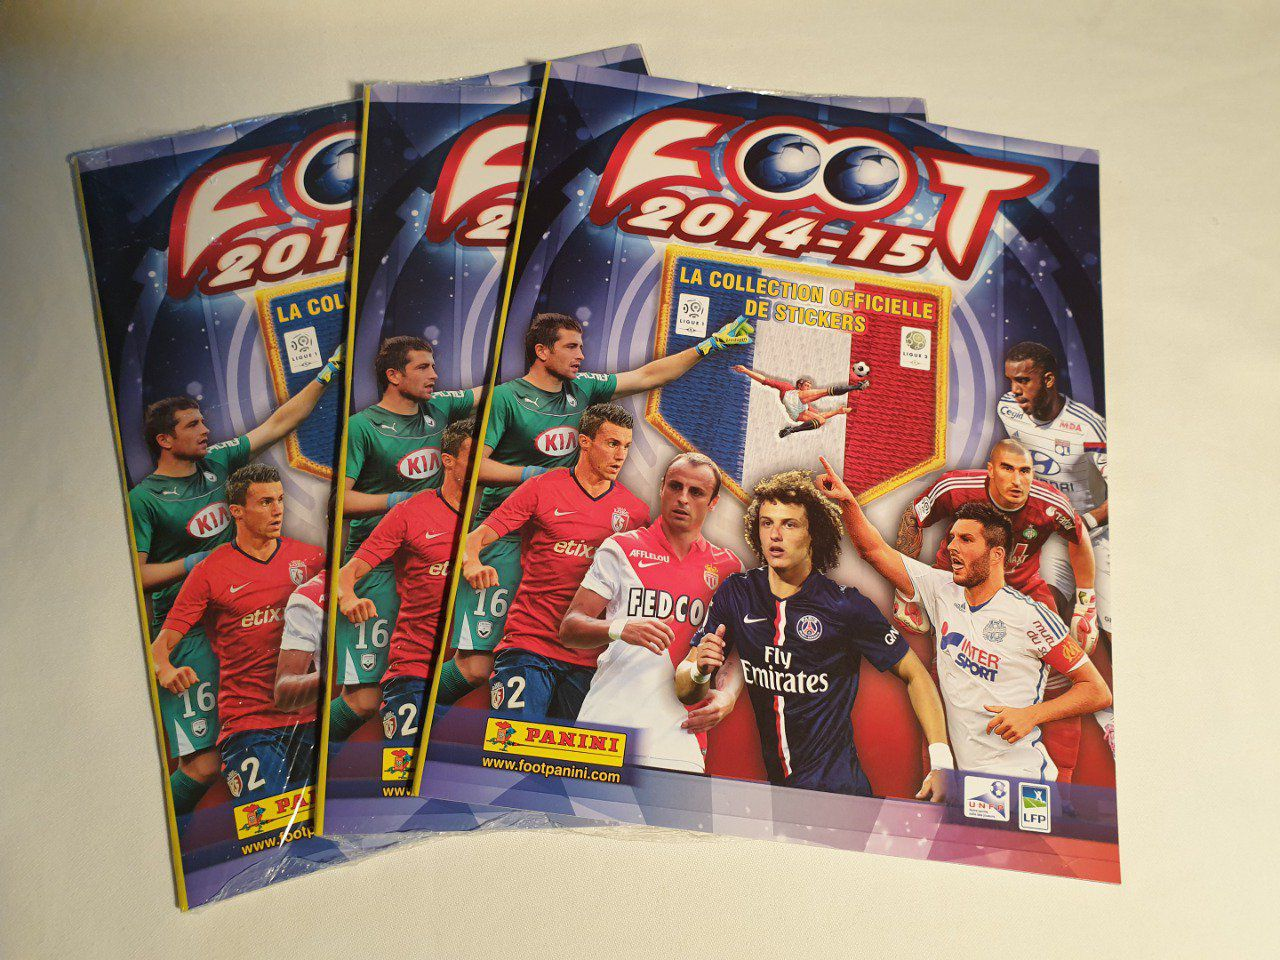 Panini championnat de France Foot 2014-2015 Album vide